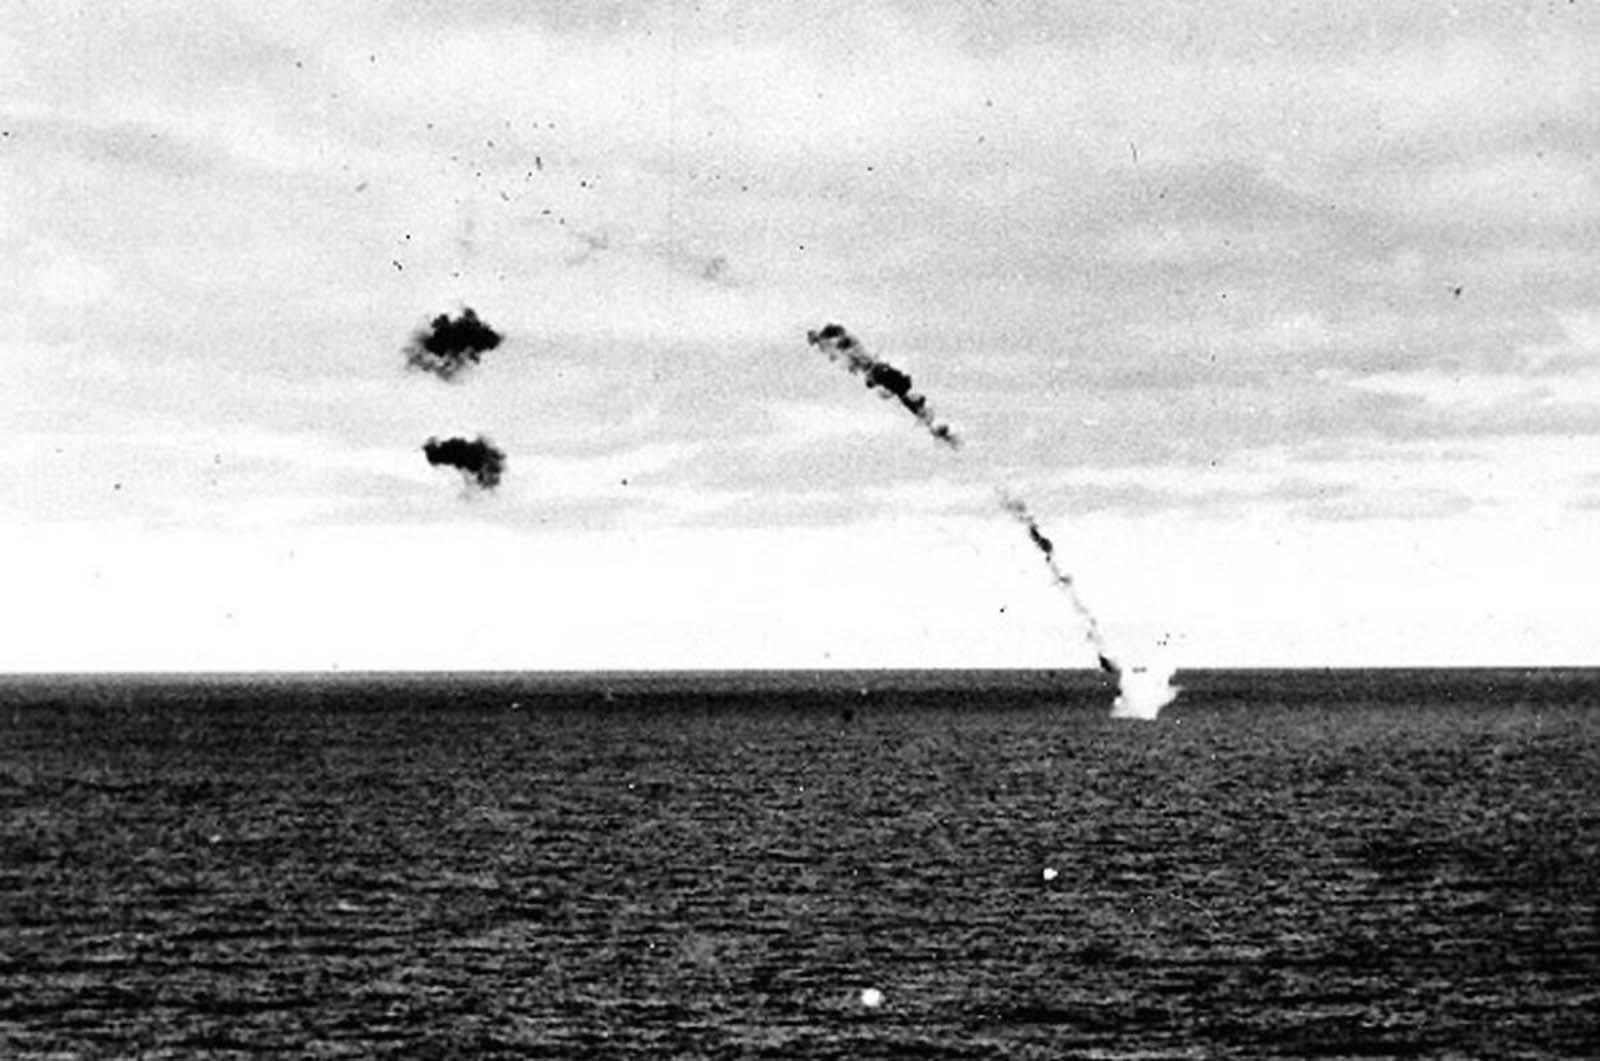 A Japanese Type 97 attack aircraft is shot down while attempting to carry out a torpedo attack on USS Yorktown, during the mid-afternoon of 4 June 1942.